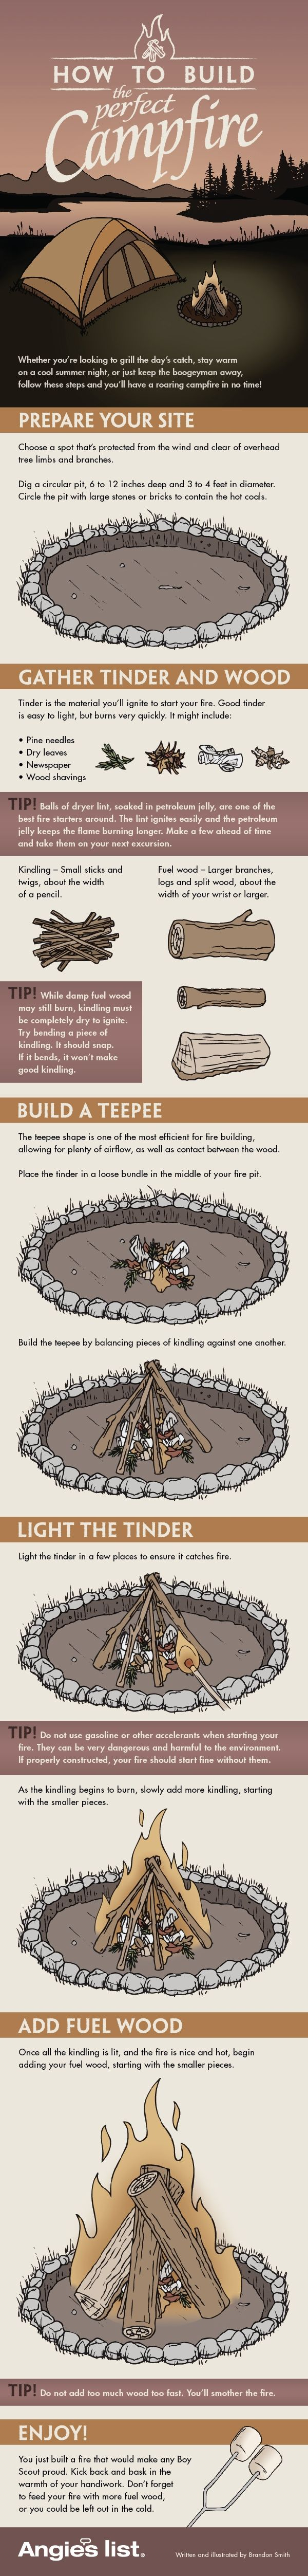 Infographic: How to build the perfect campfire   Angies List